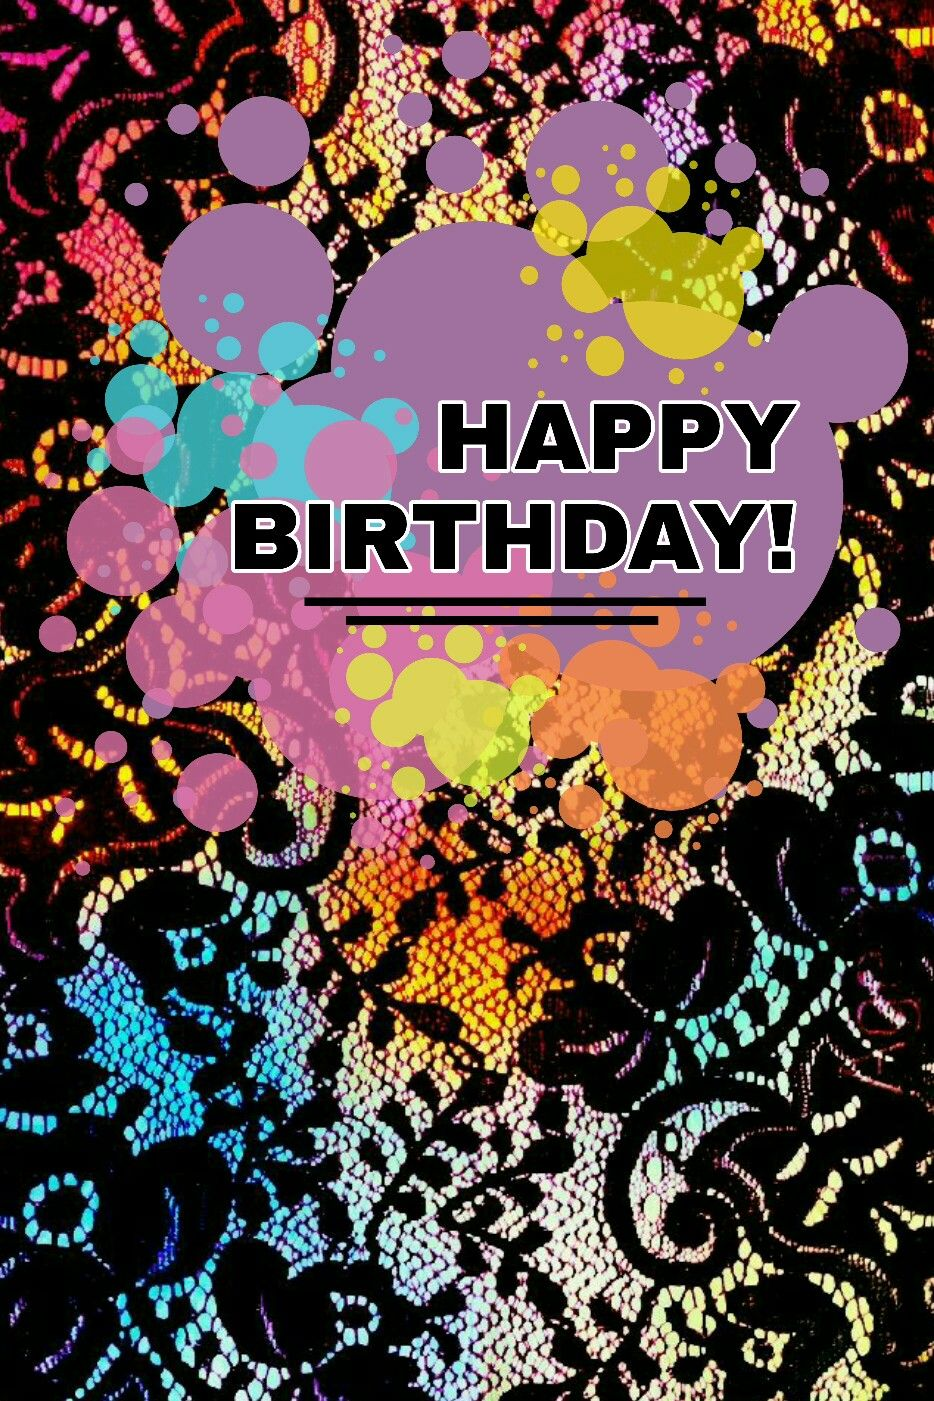 Happy Birthday Lace wallpaper, Lace iphone wallpaper